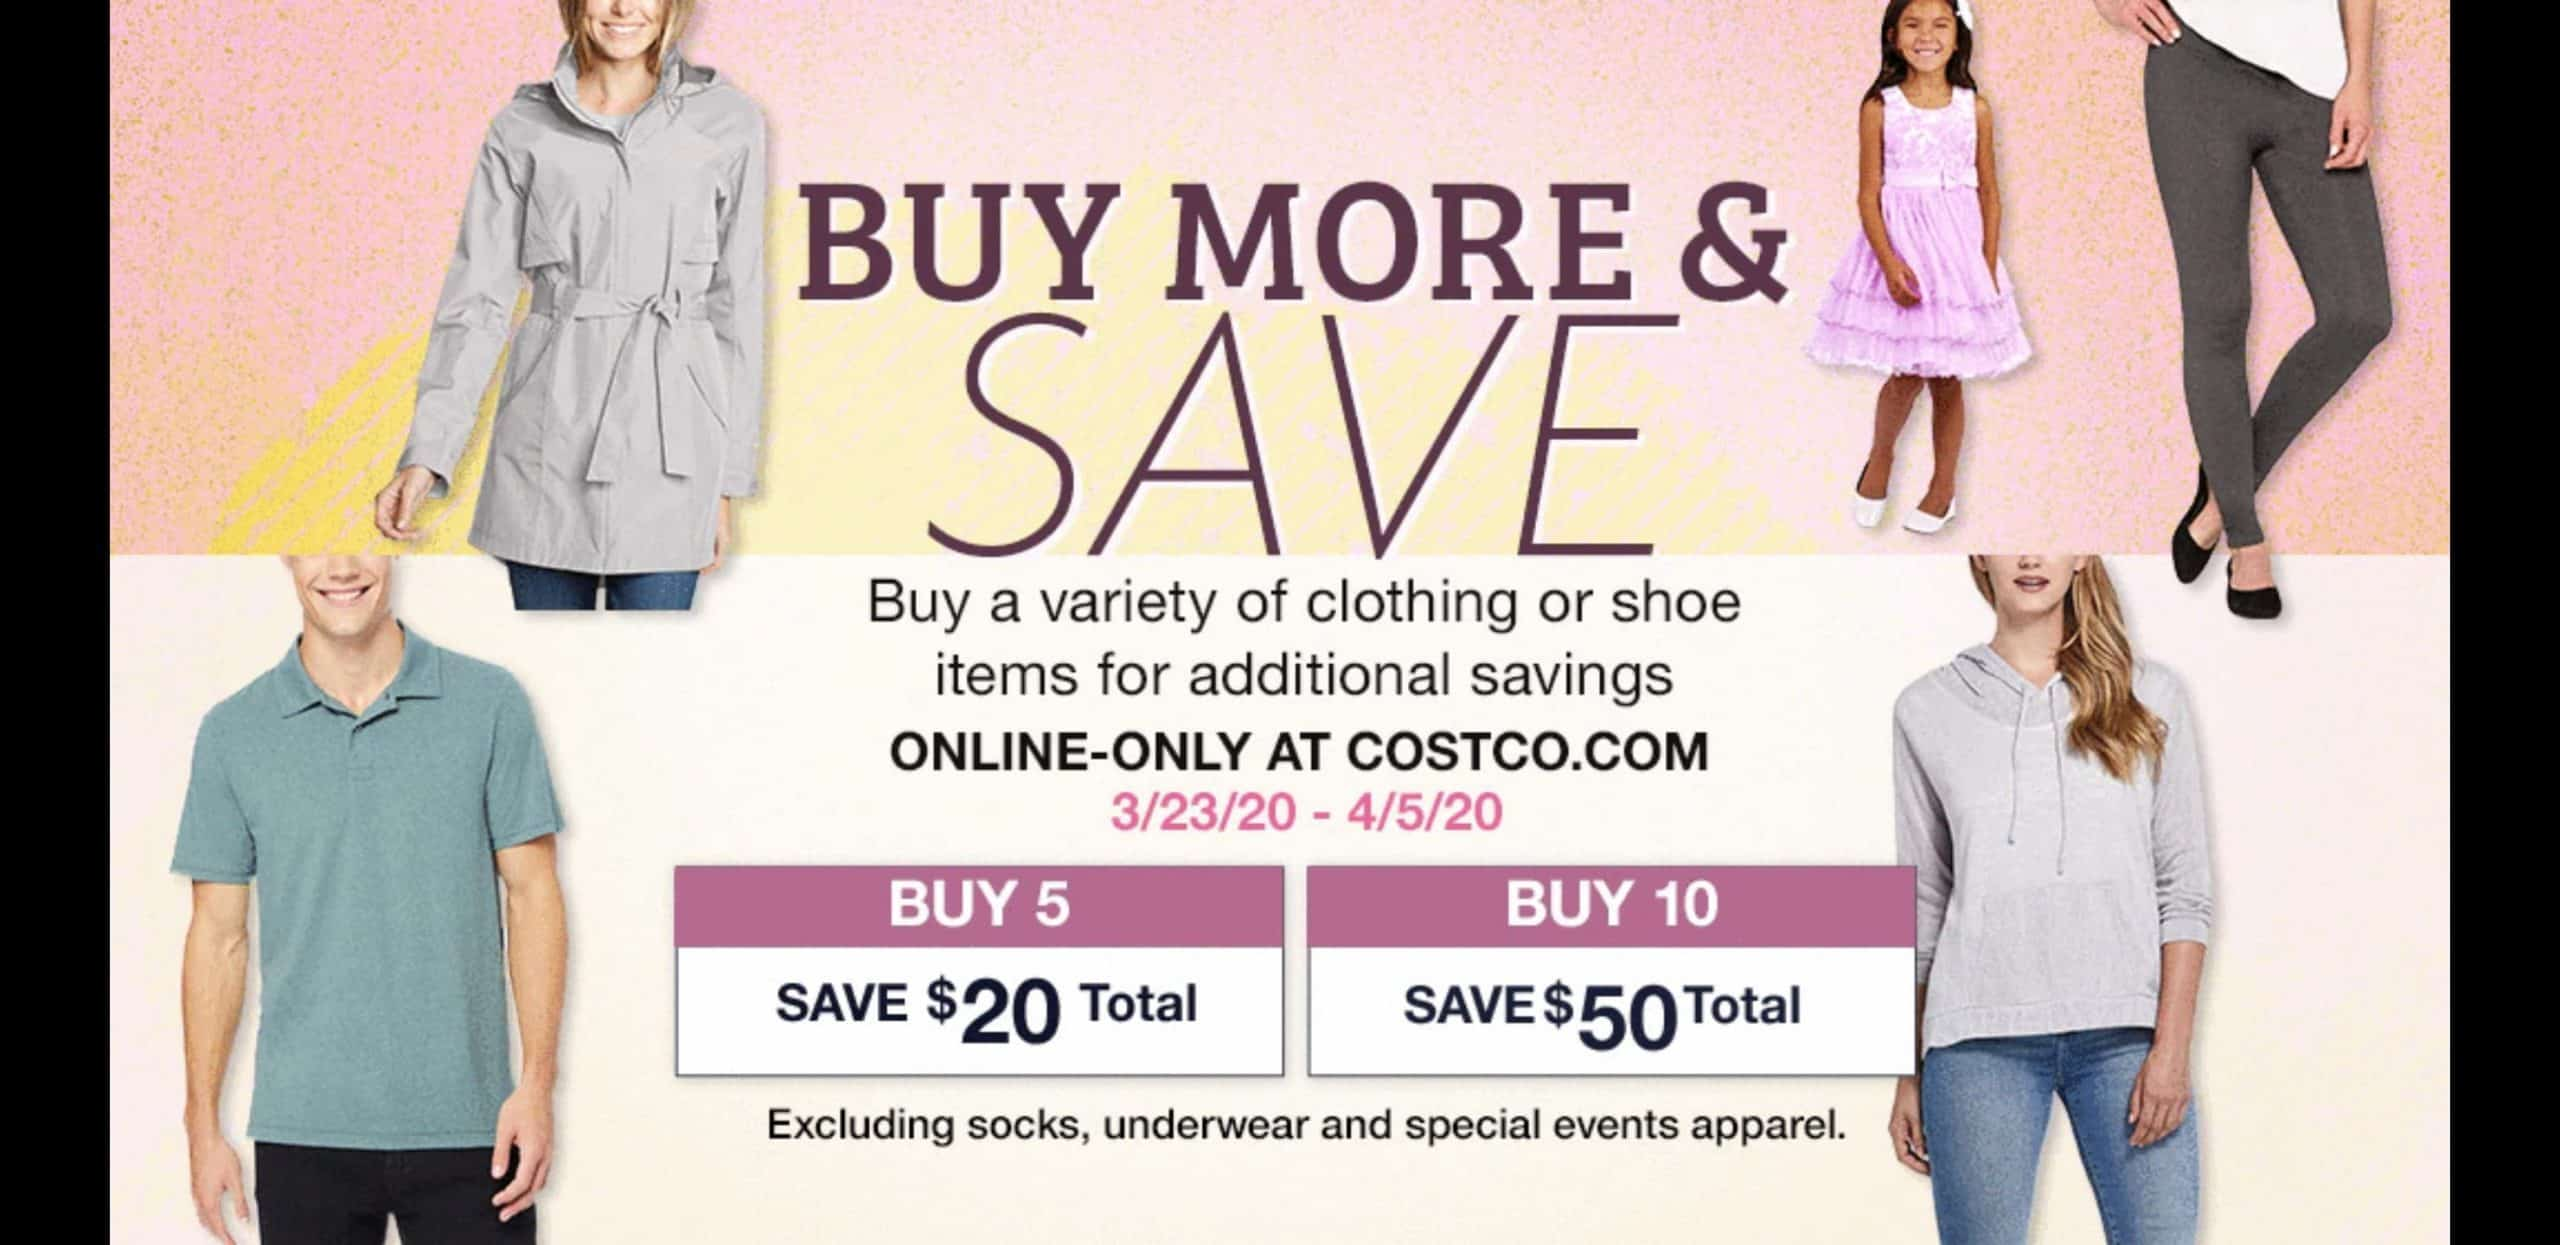 Save $50 on Clothing for the Family at Costco!